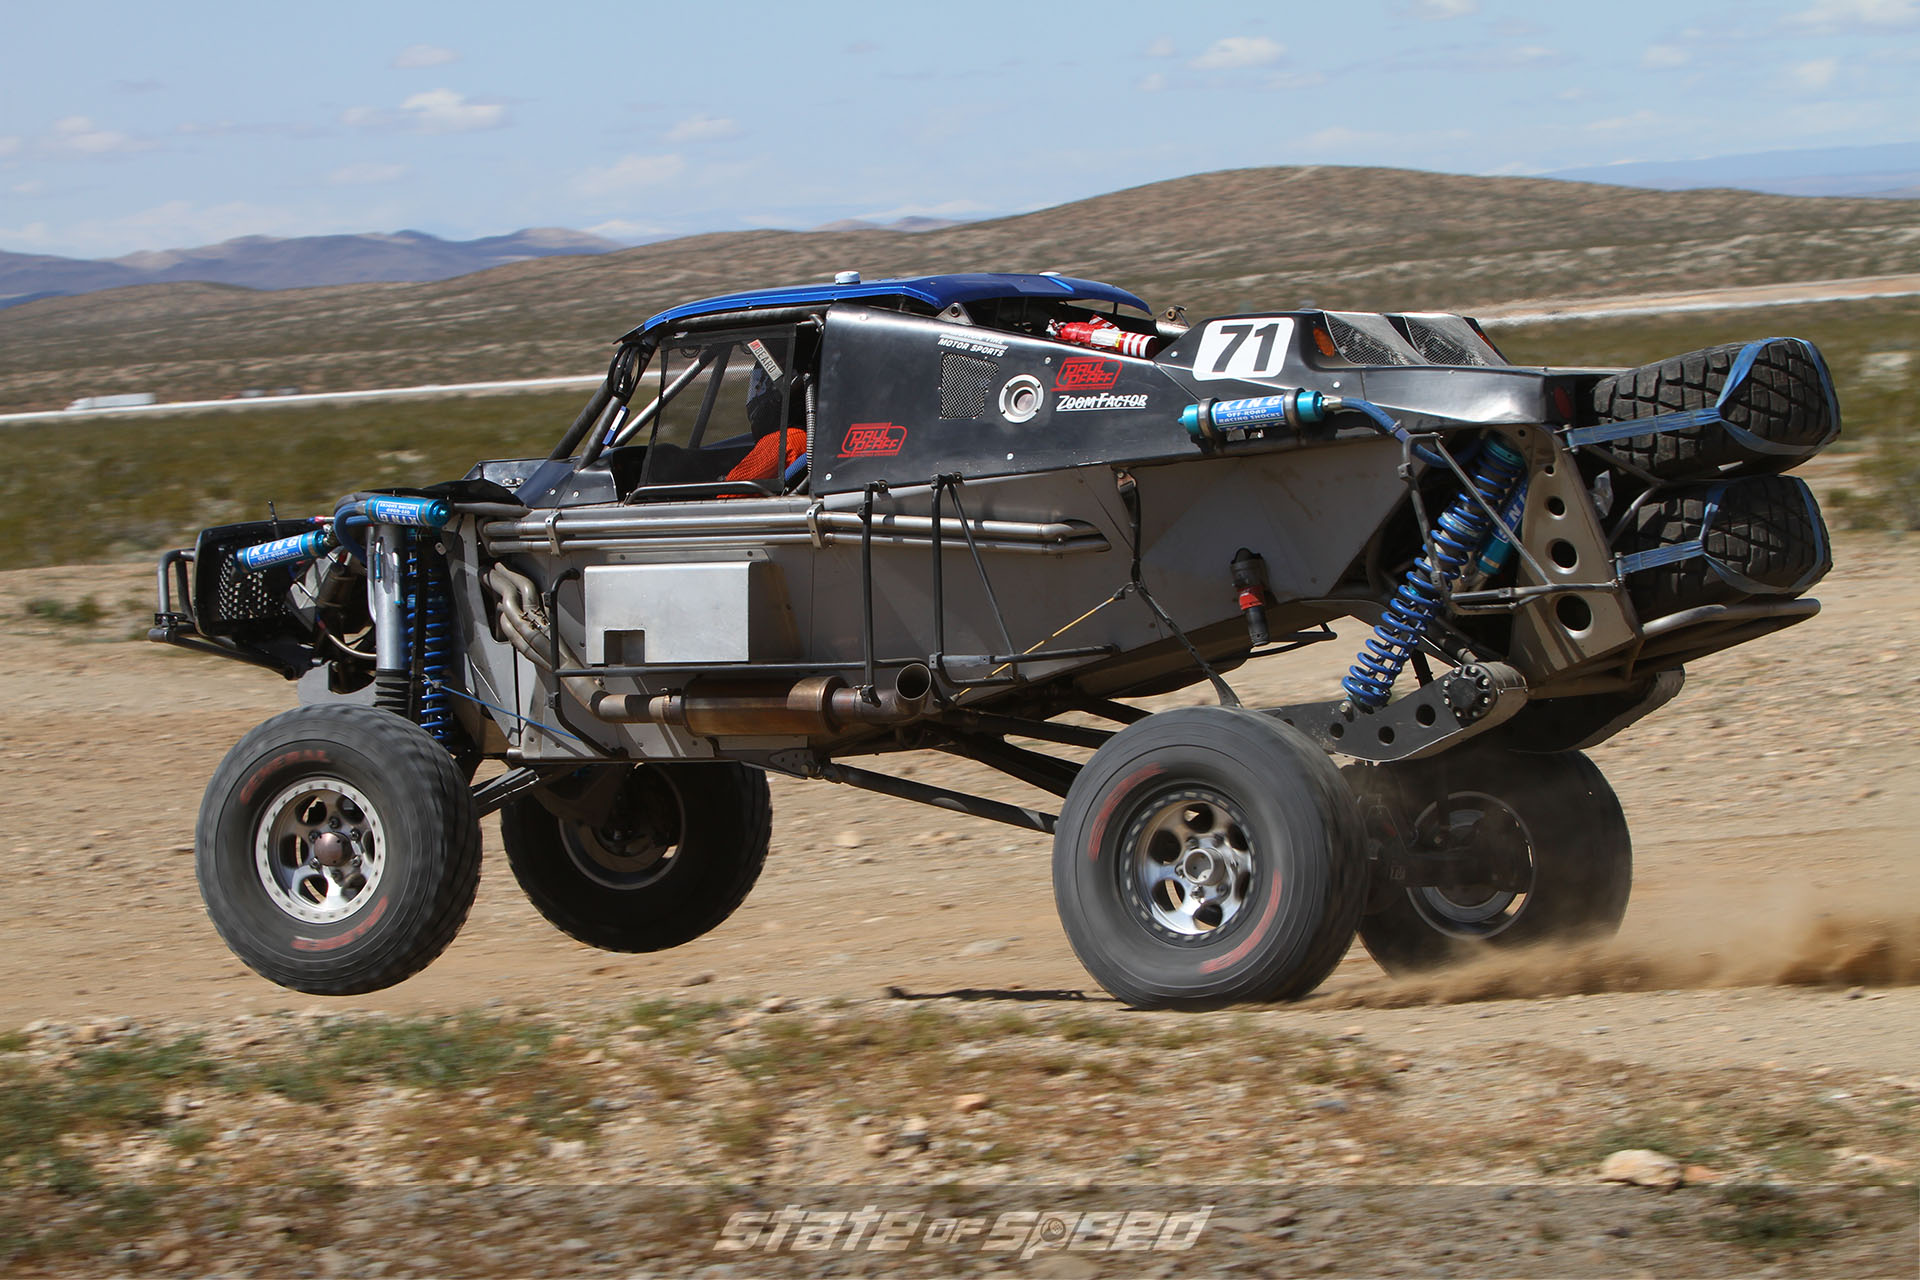 Race UTV getting air